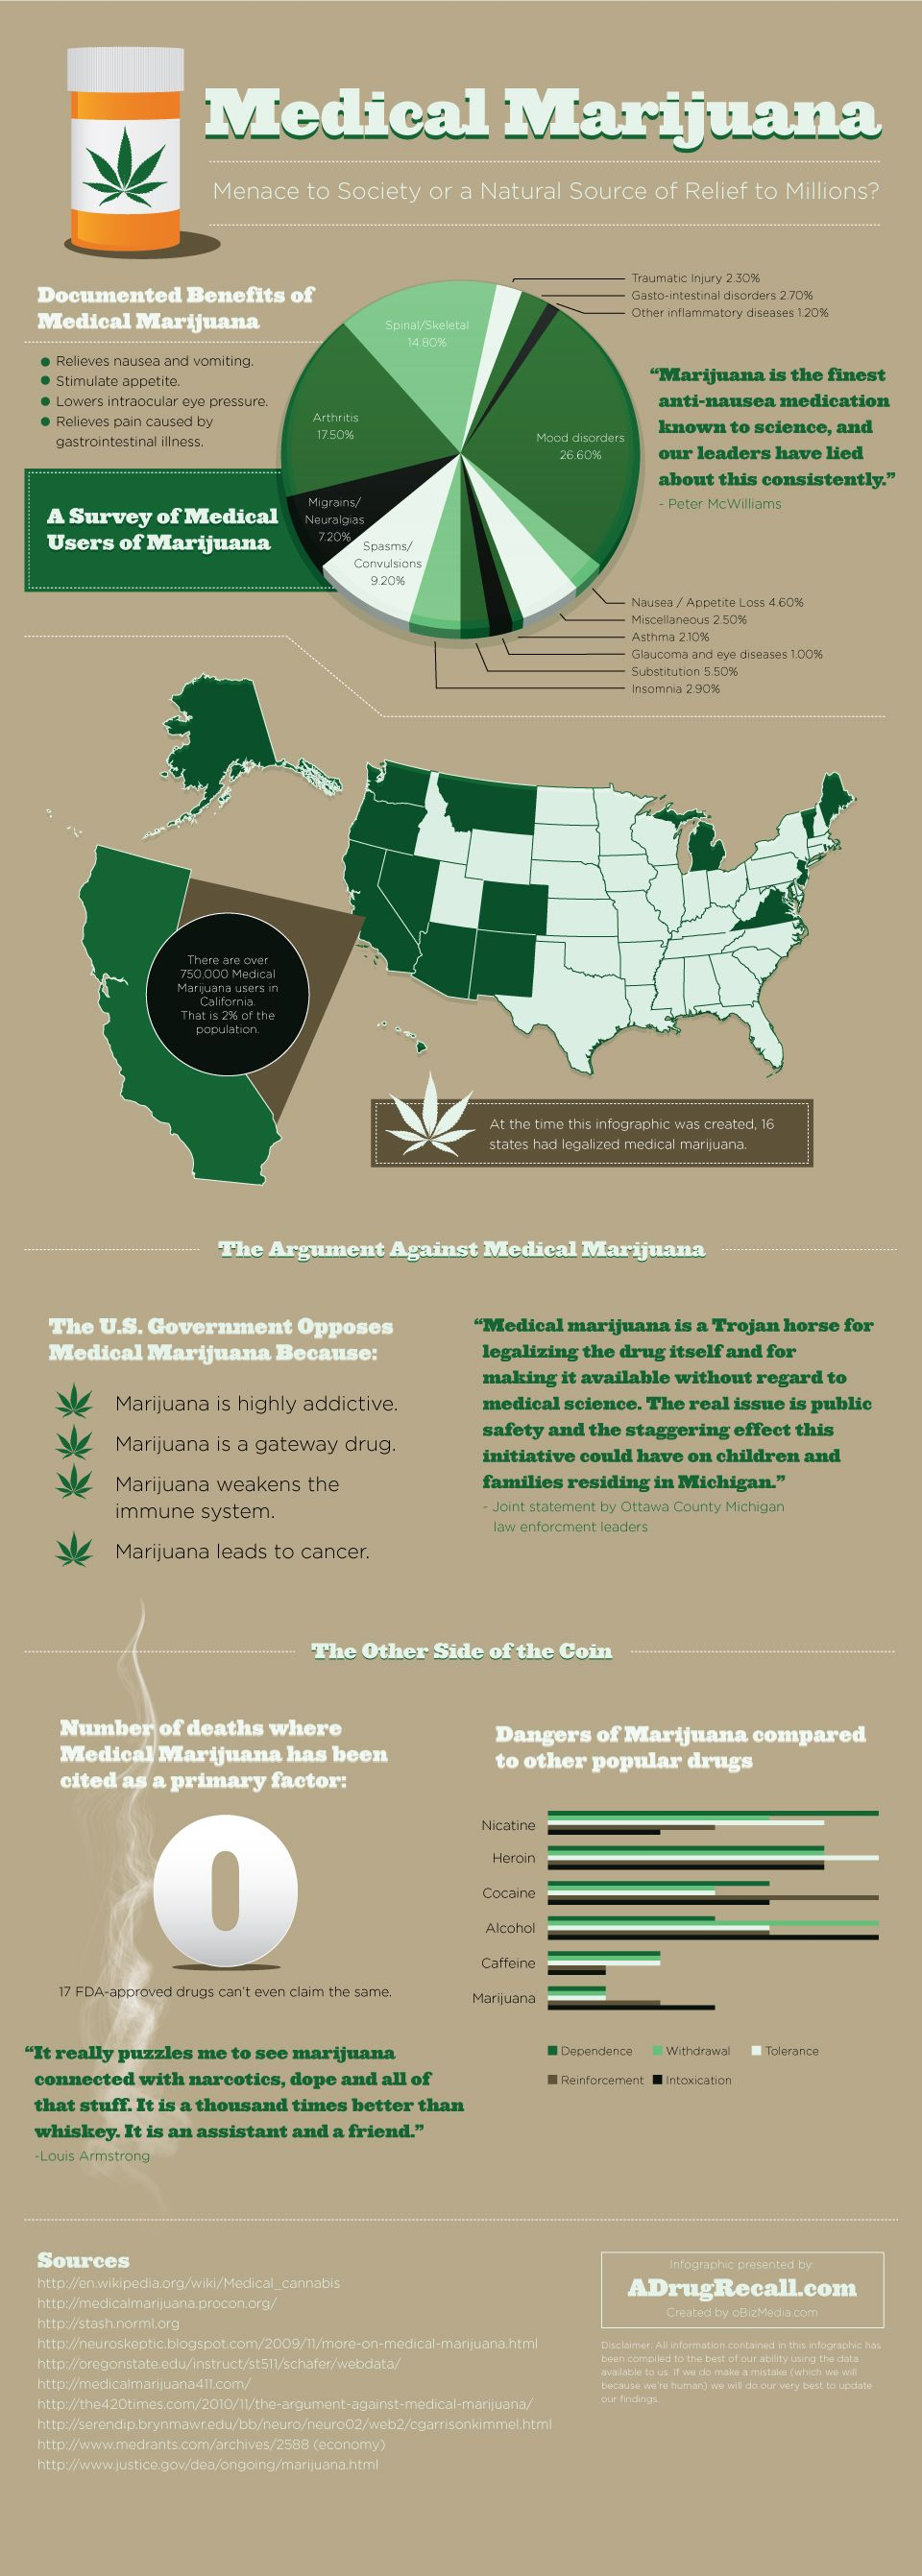 Writing a paper on legalization of marijuana, need good sources.?